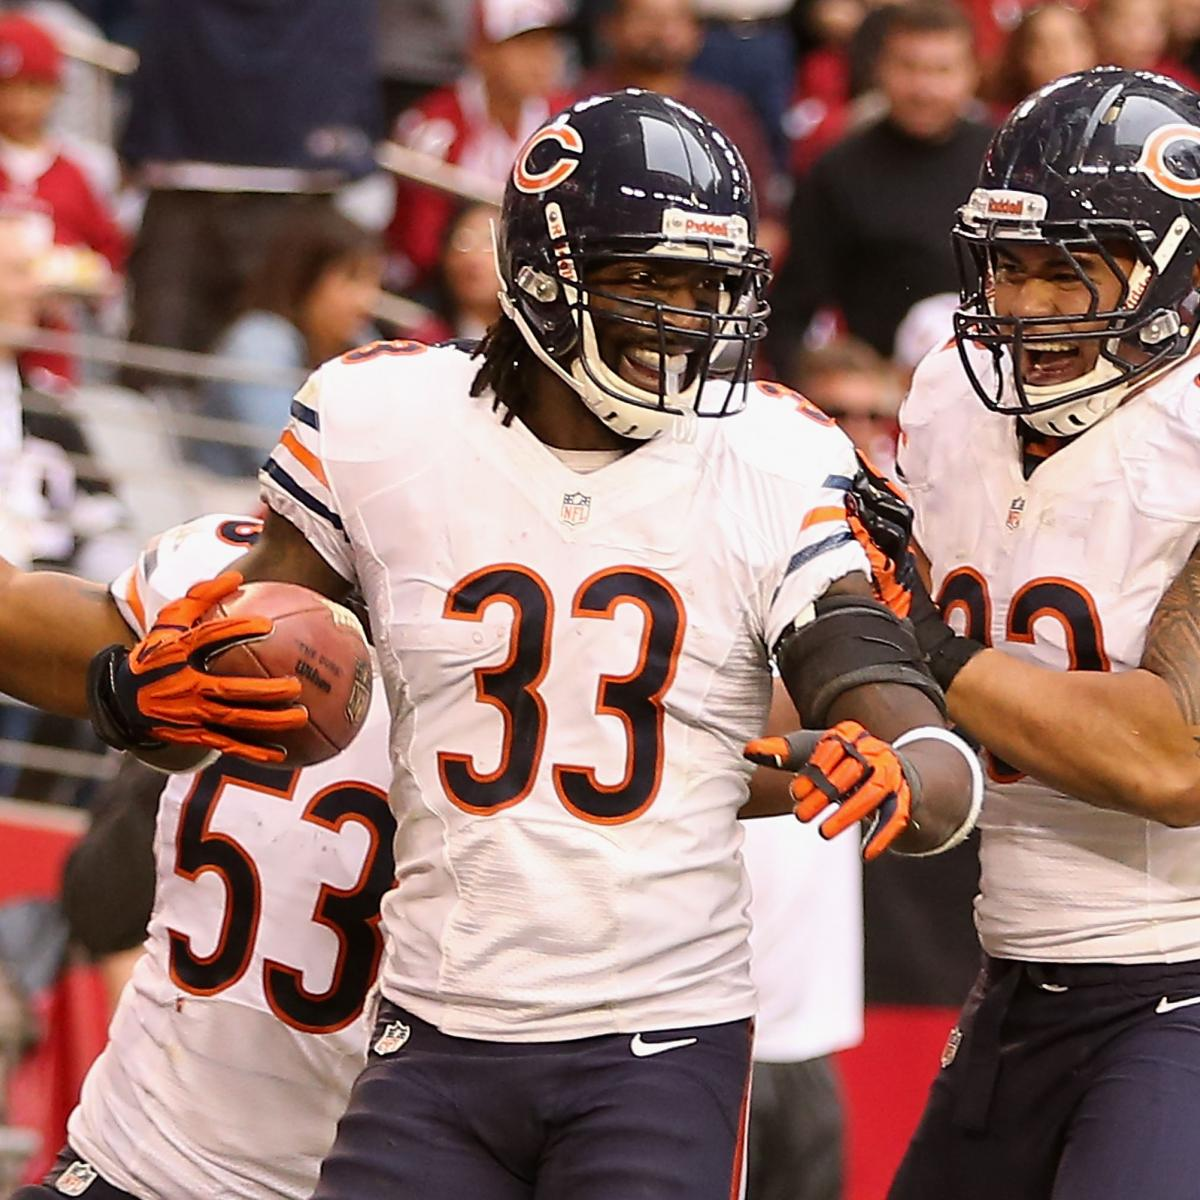 Feed Me Nfl: Charles Tillman Expects The Chicago Bears To Win Super